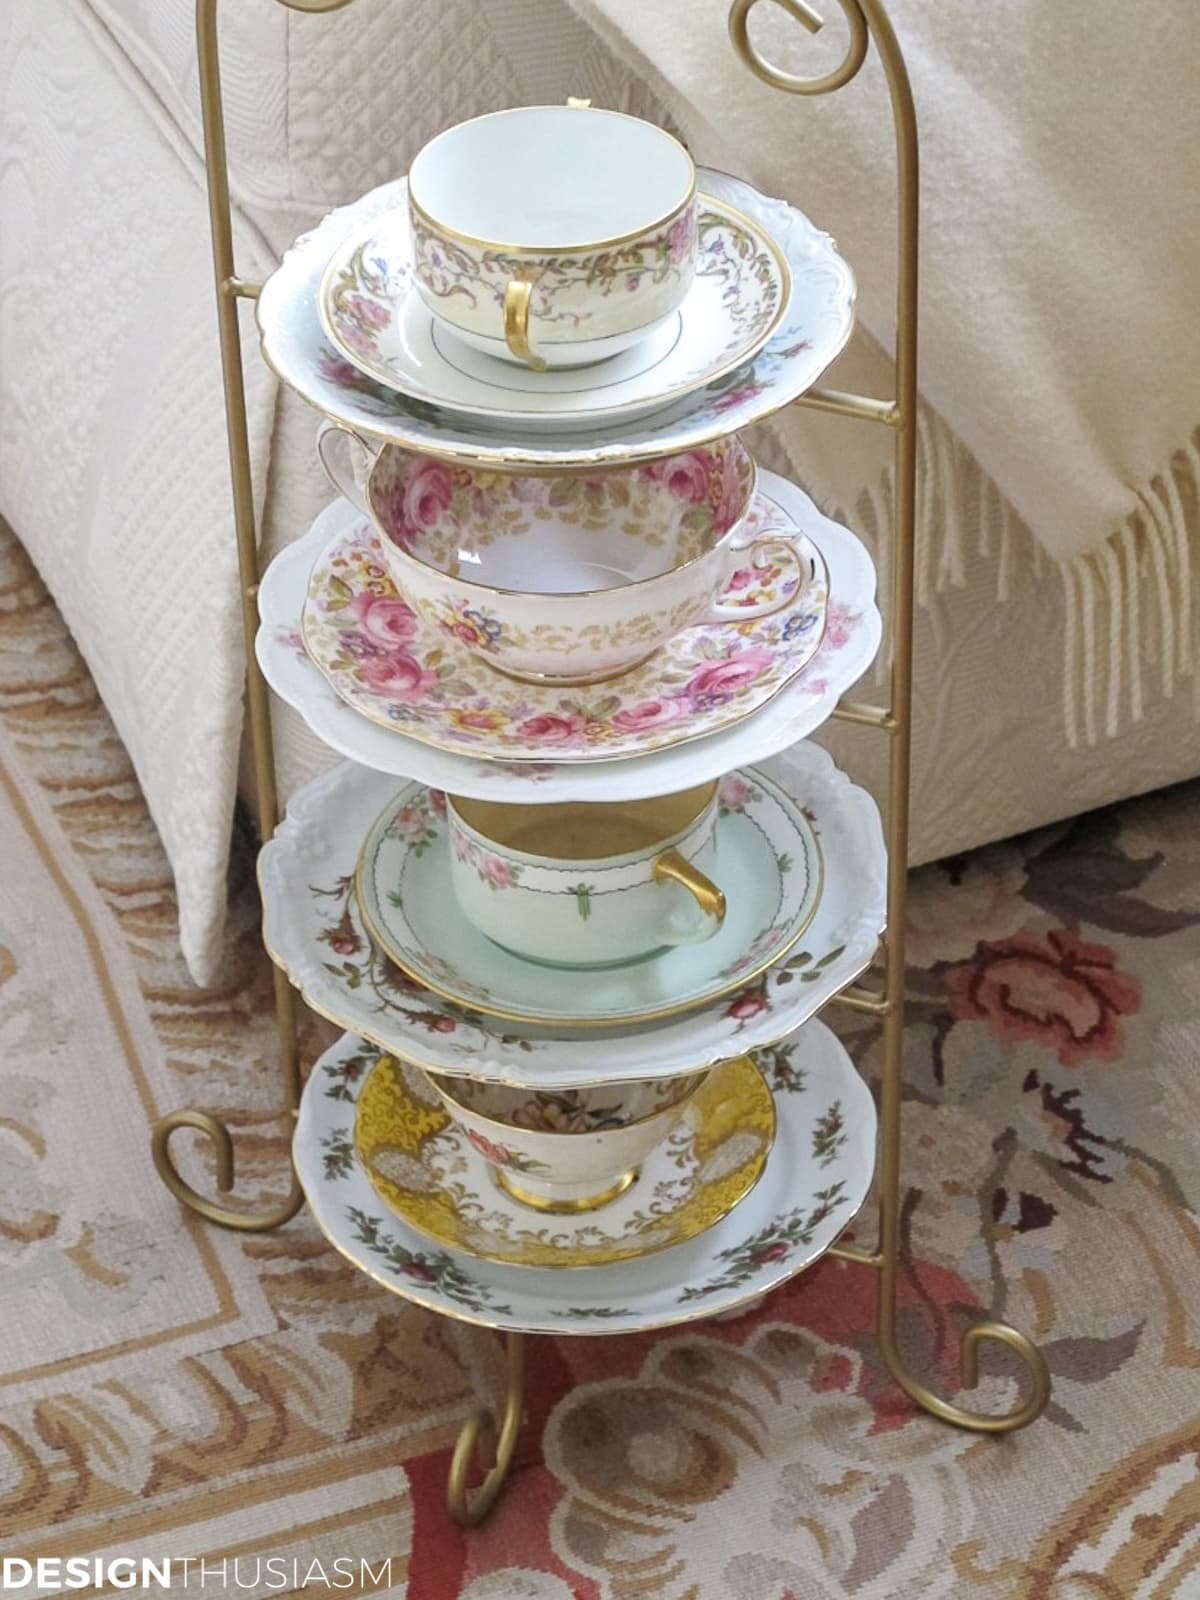 vintage teacups and saucers displayed on a wire rack